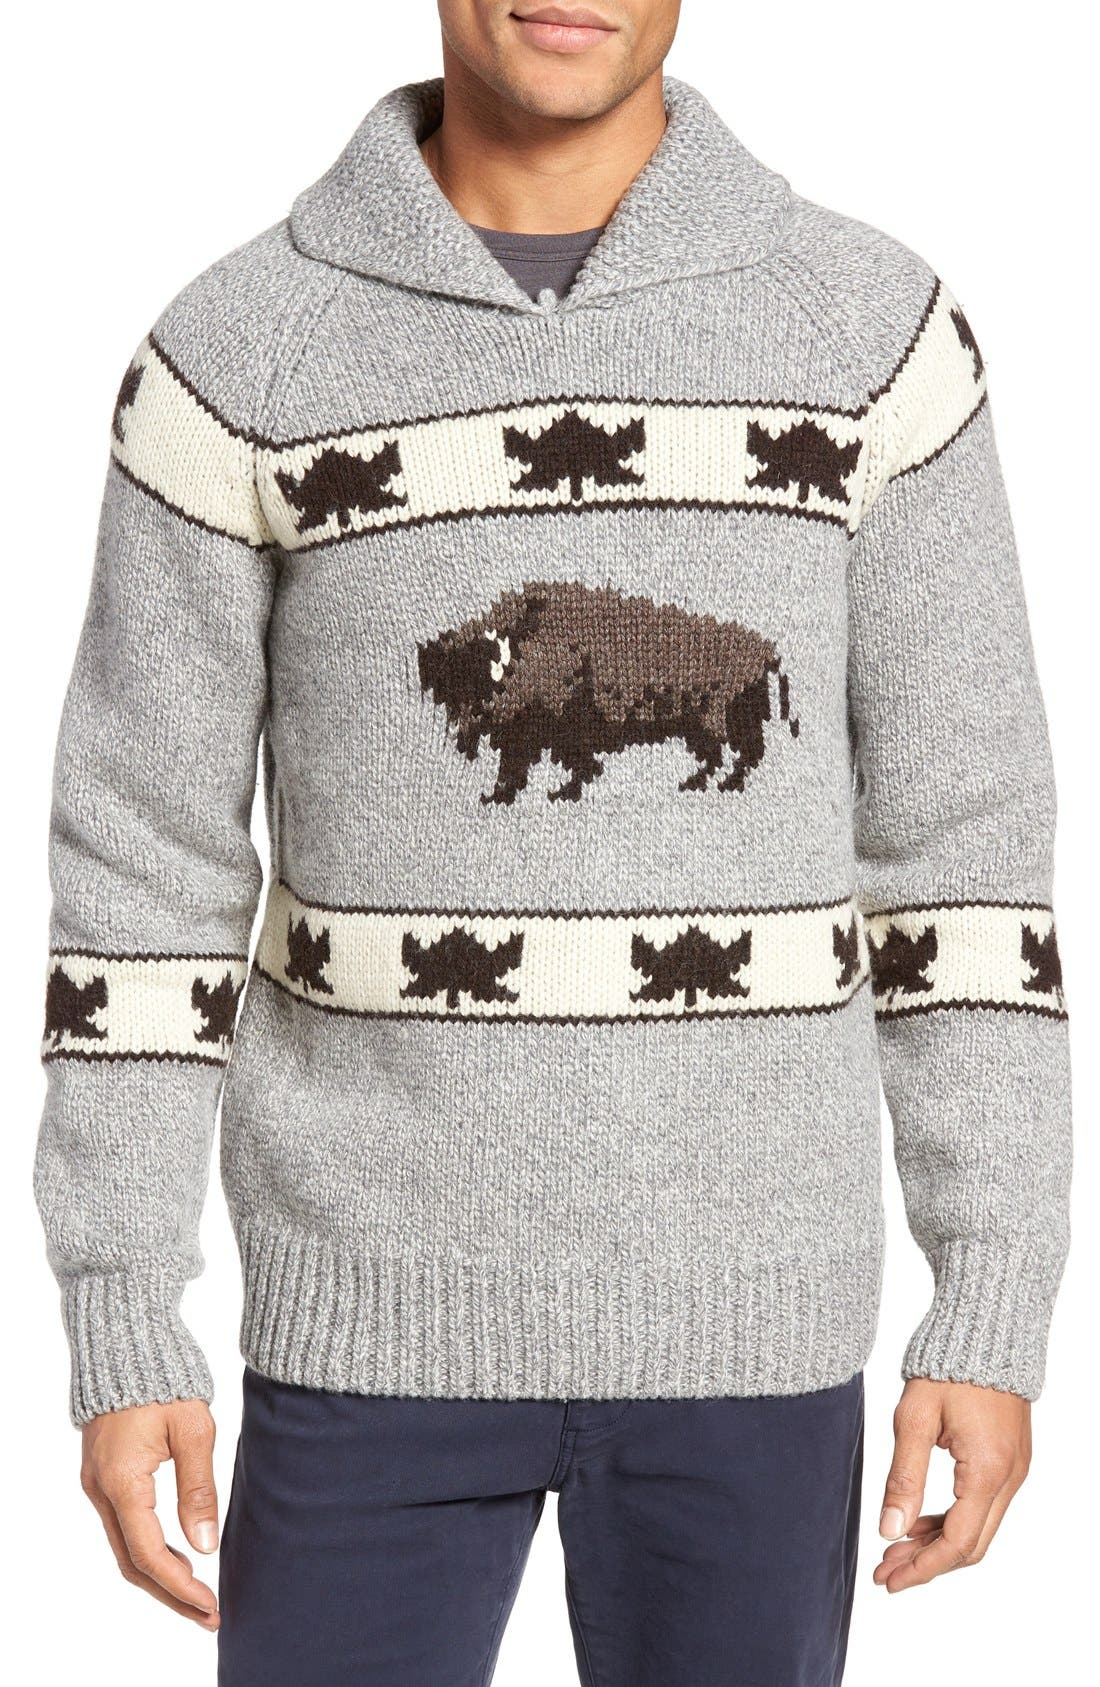 Cowichan Pullover Sweater,                             Main thumbnail 1, color,                             Heather Grey